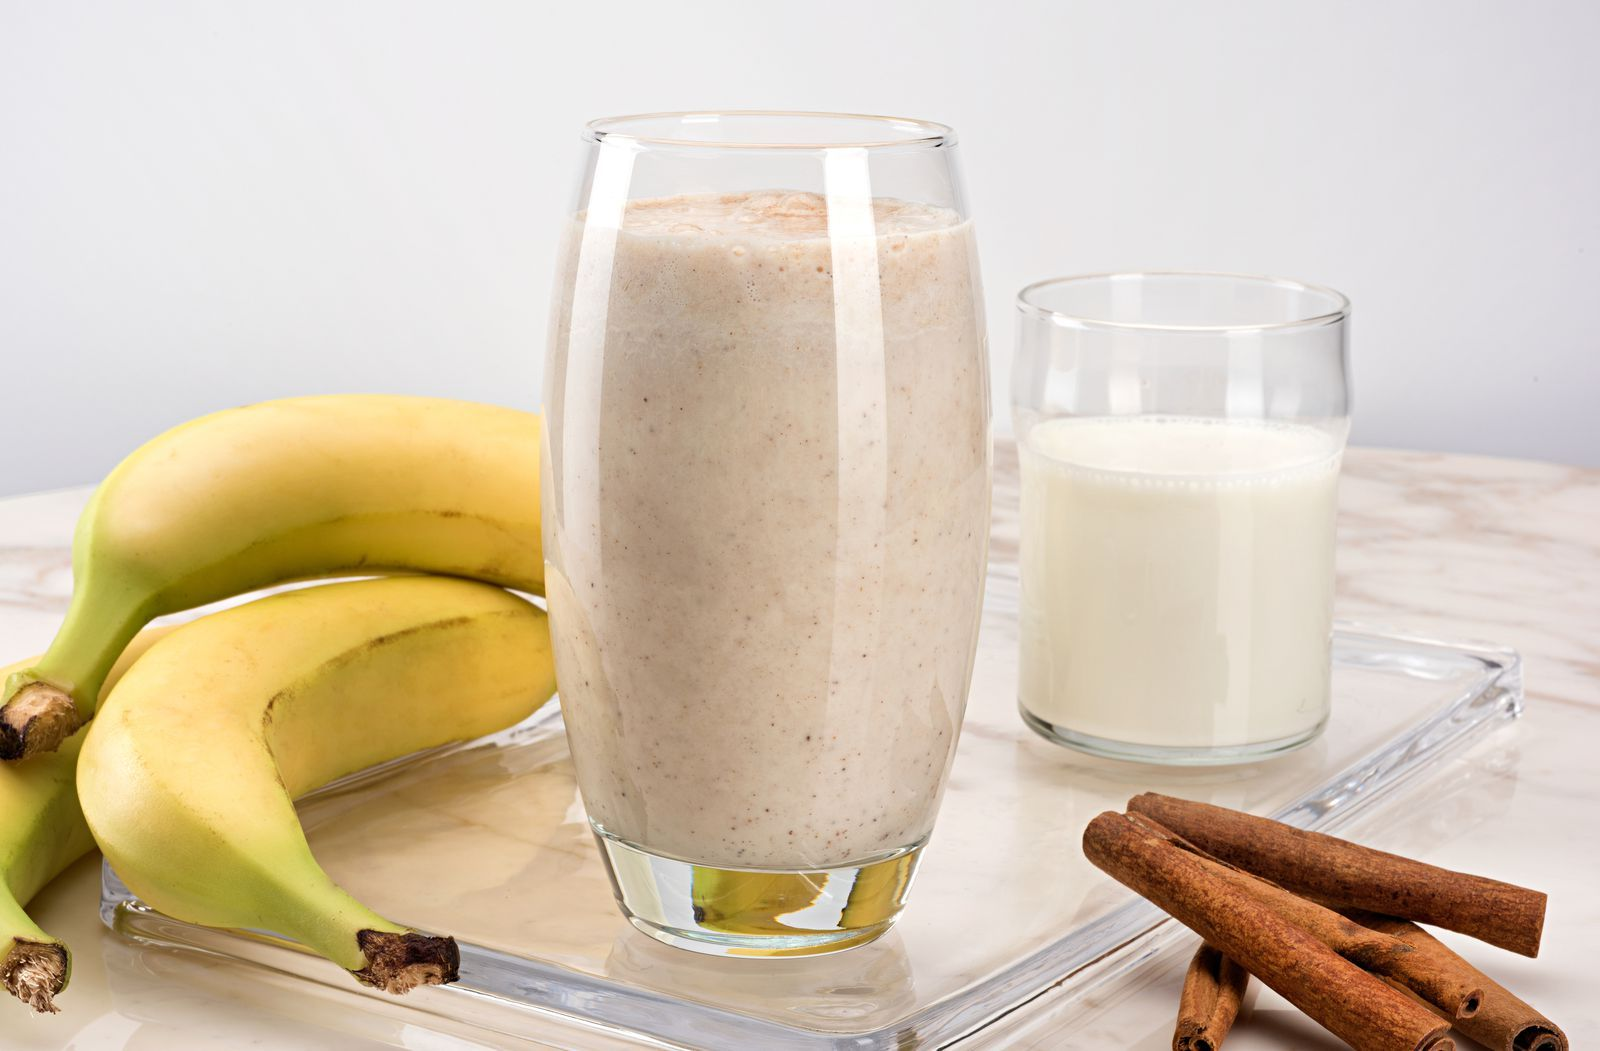 10 Meal Replacement Shakes That Actually Taste Good